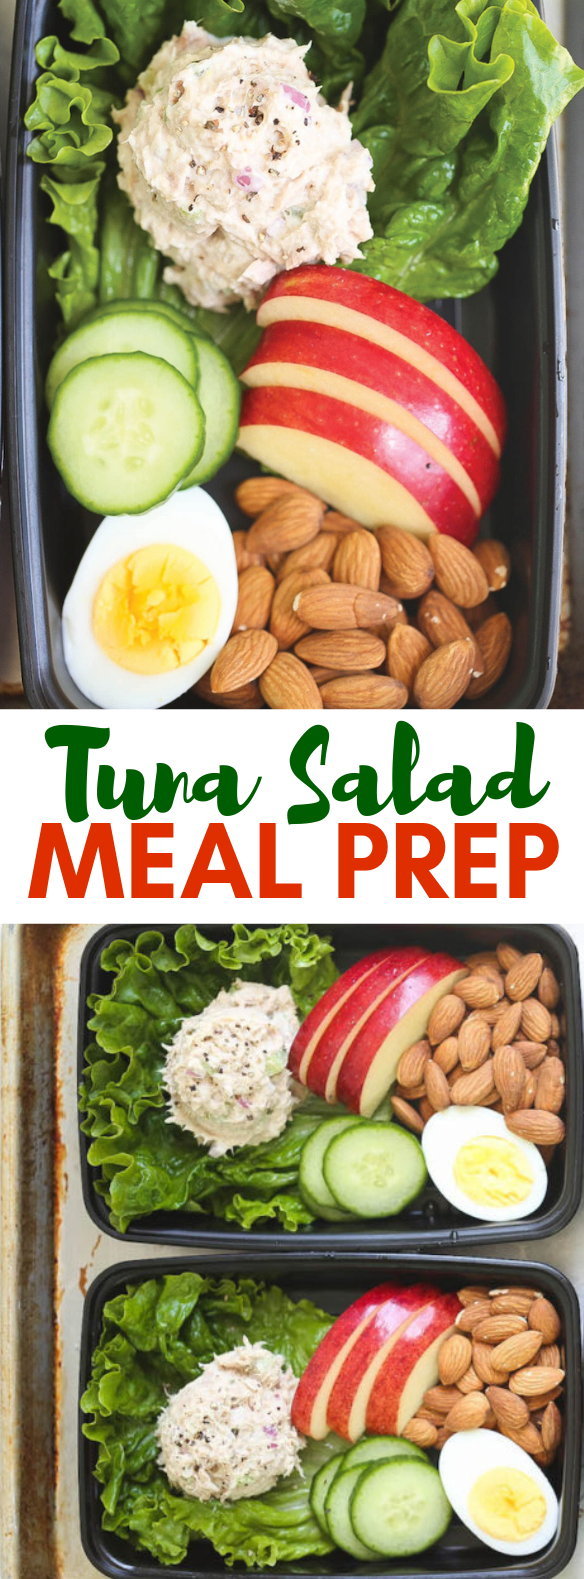 TUNA SALAD MEAL PREP #healthy #diet